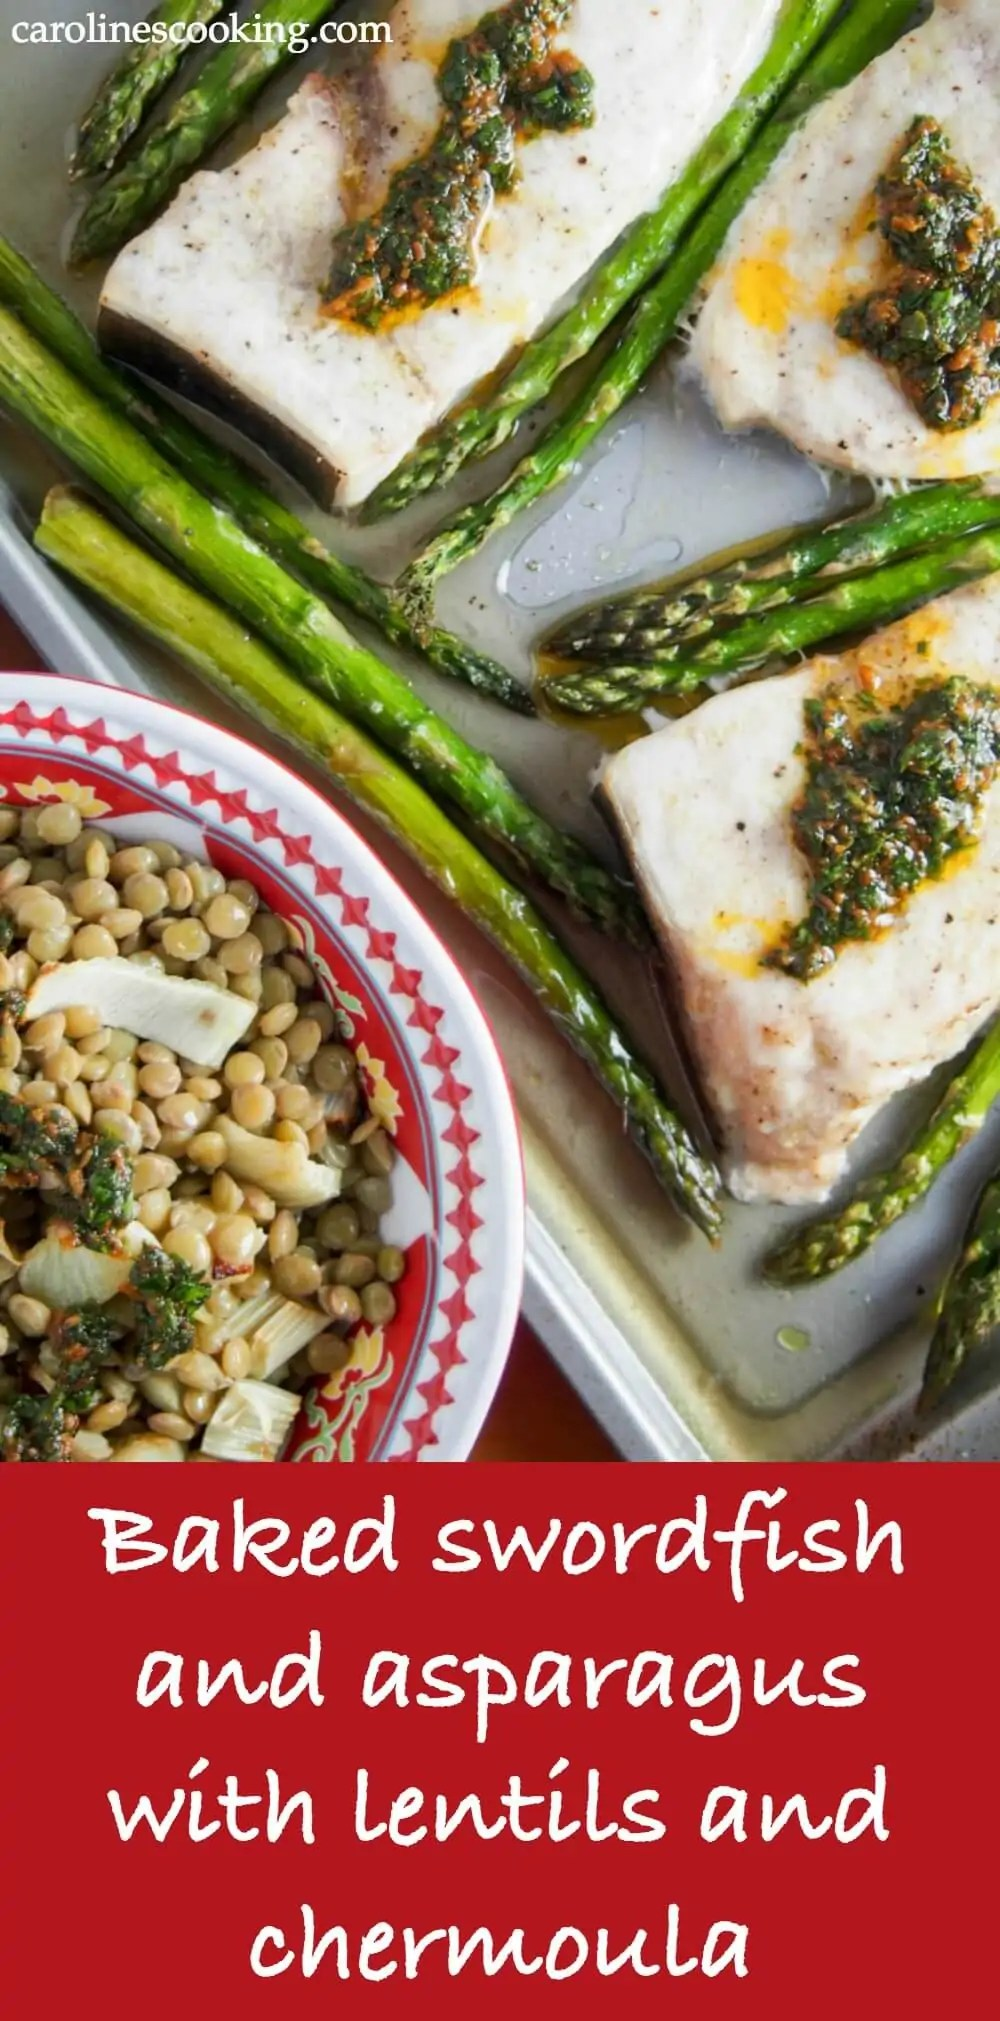 This baked swordfish and asparagus with lentils and chermoula is incredibly easy & quick to make, healthy, fresh and delicious. In other words, big win! A great weekday meal that's restaurant quality. #swordfish #chermoula #asparagus #seafood #spring